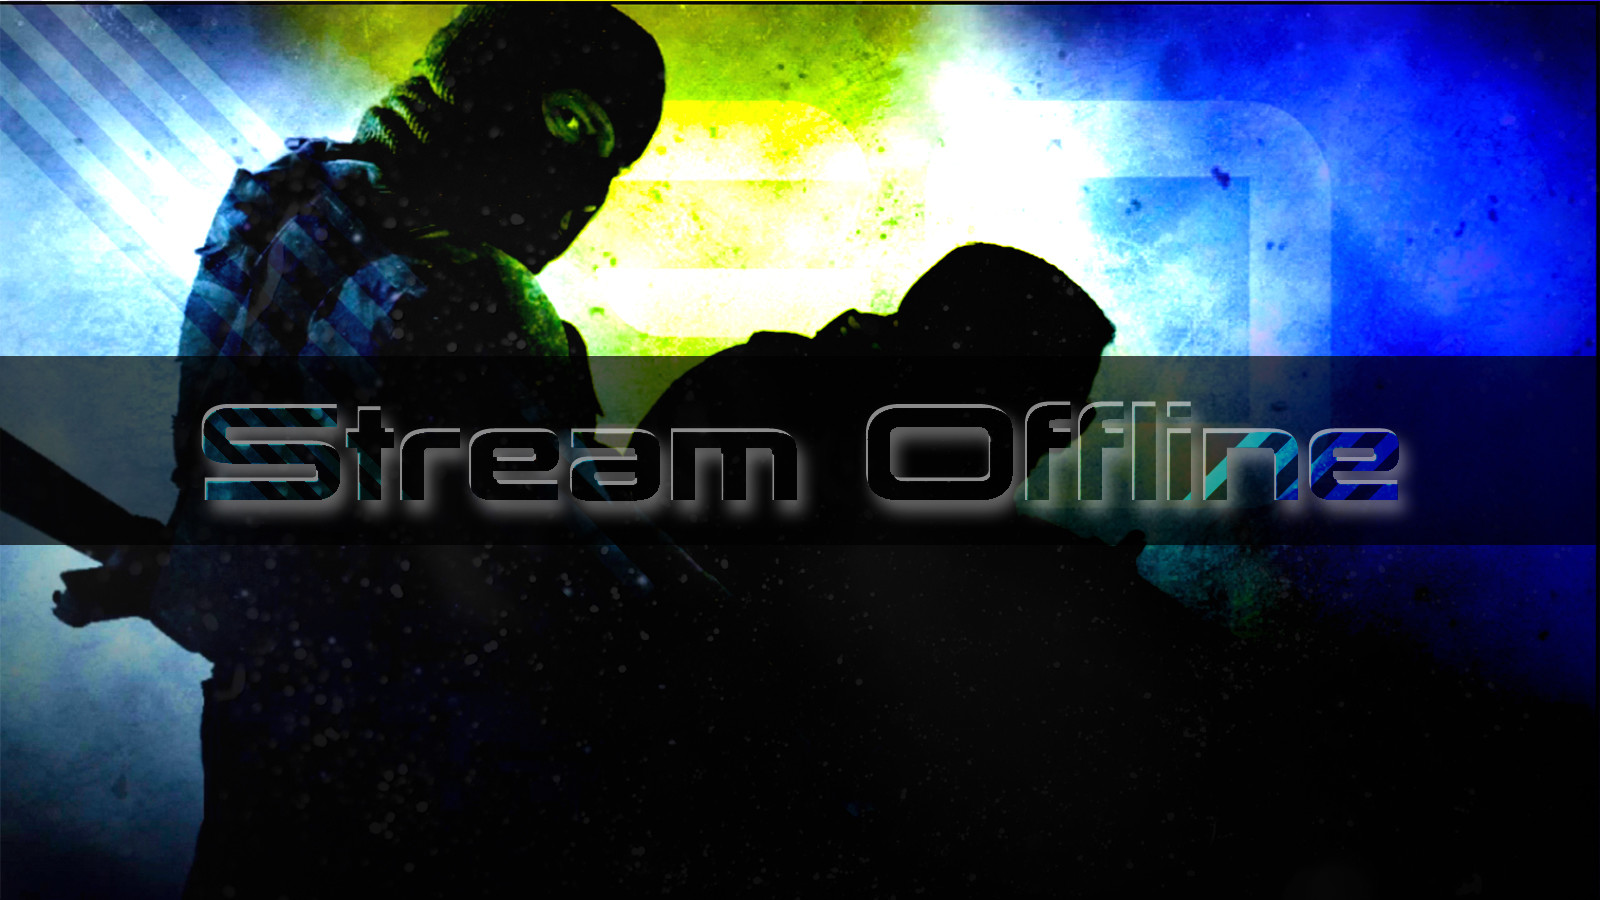 Joe cove offline banner p2